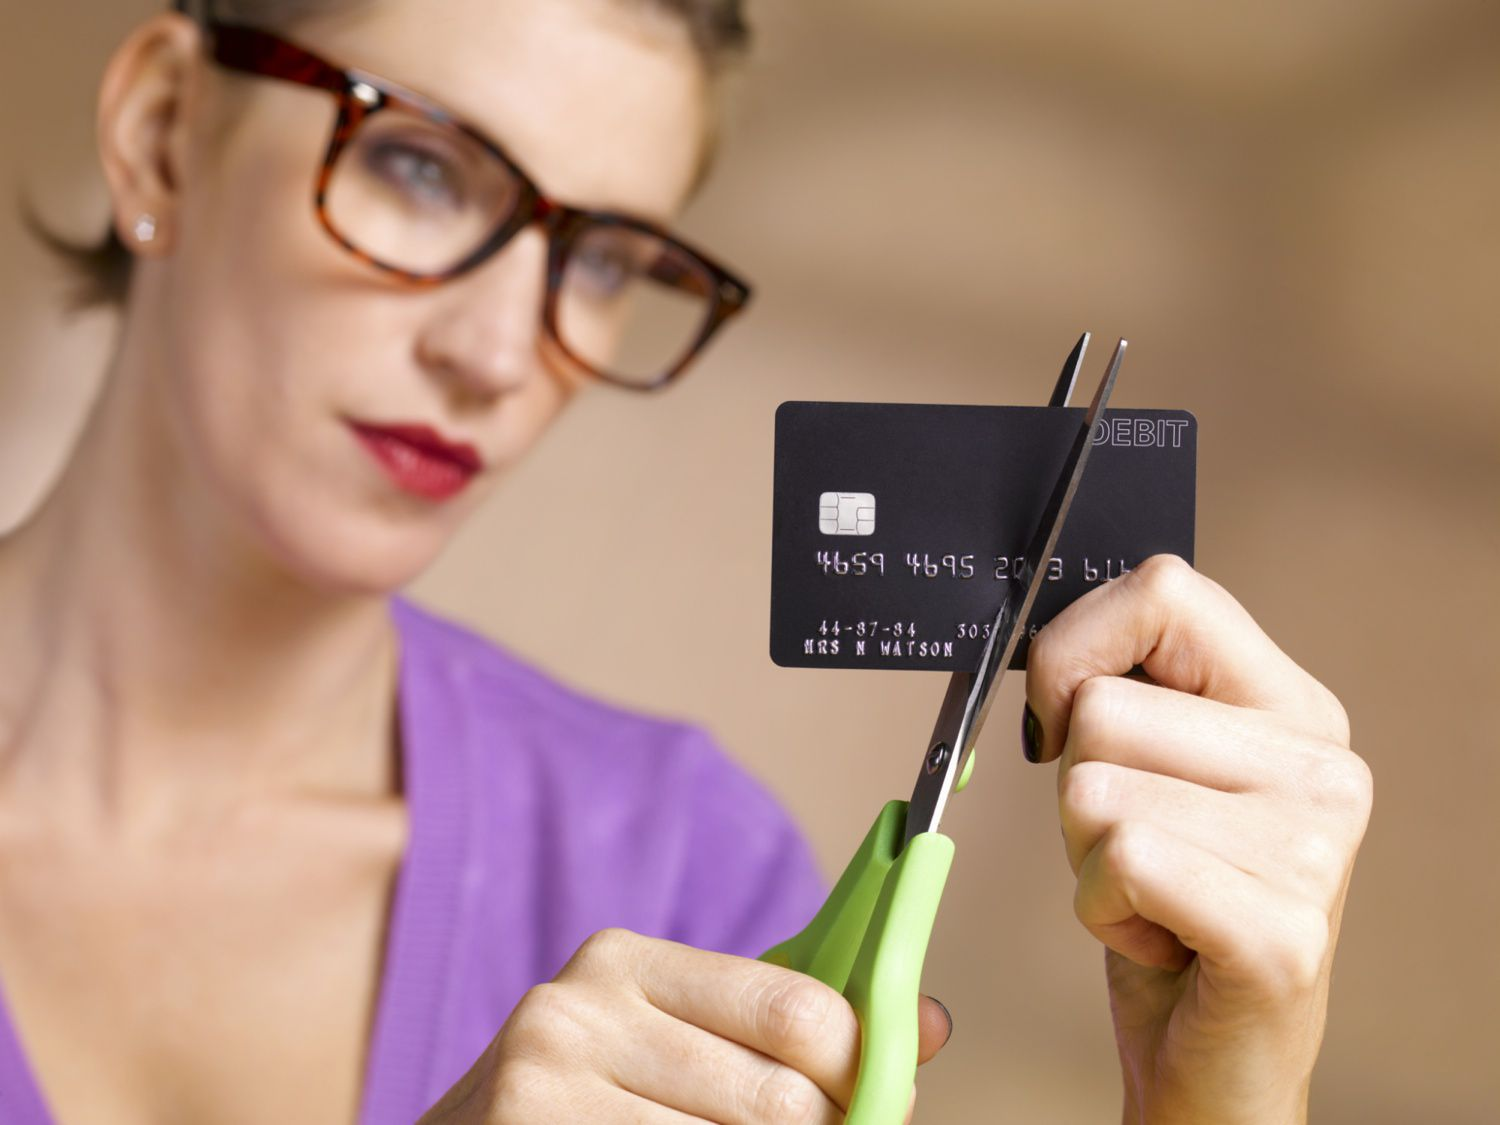 Person cutting up a credit card